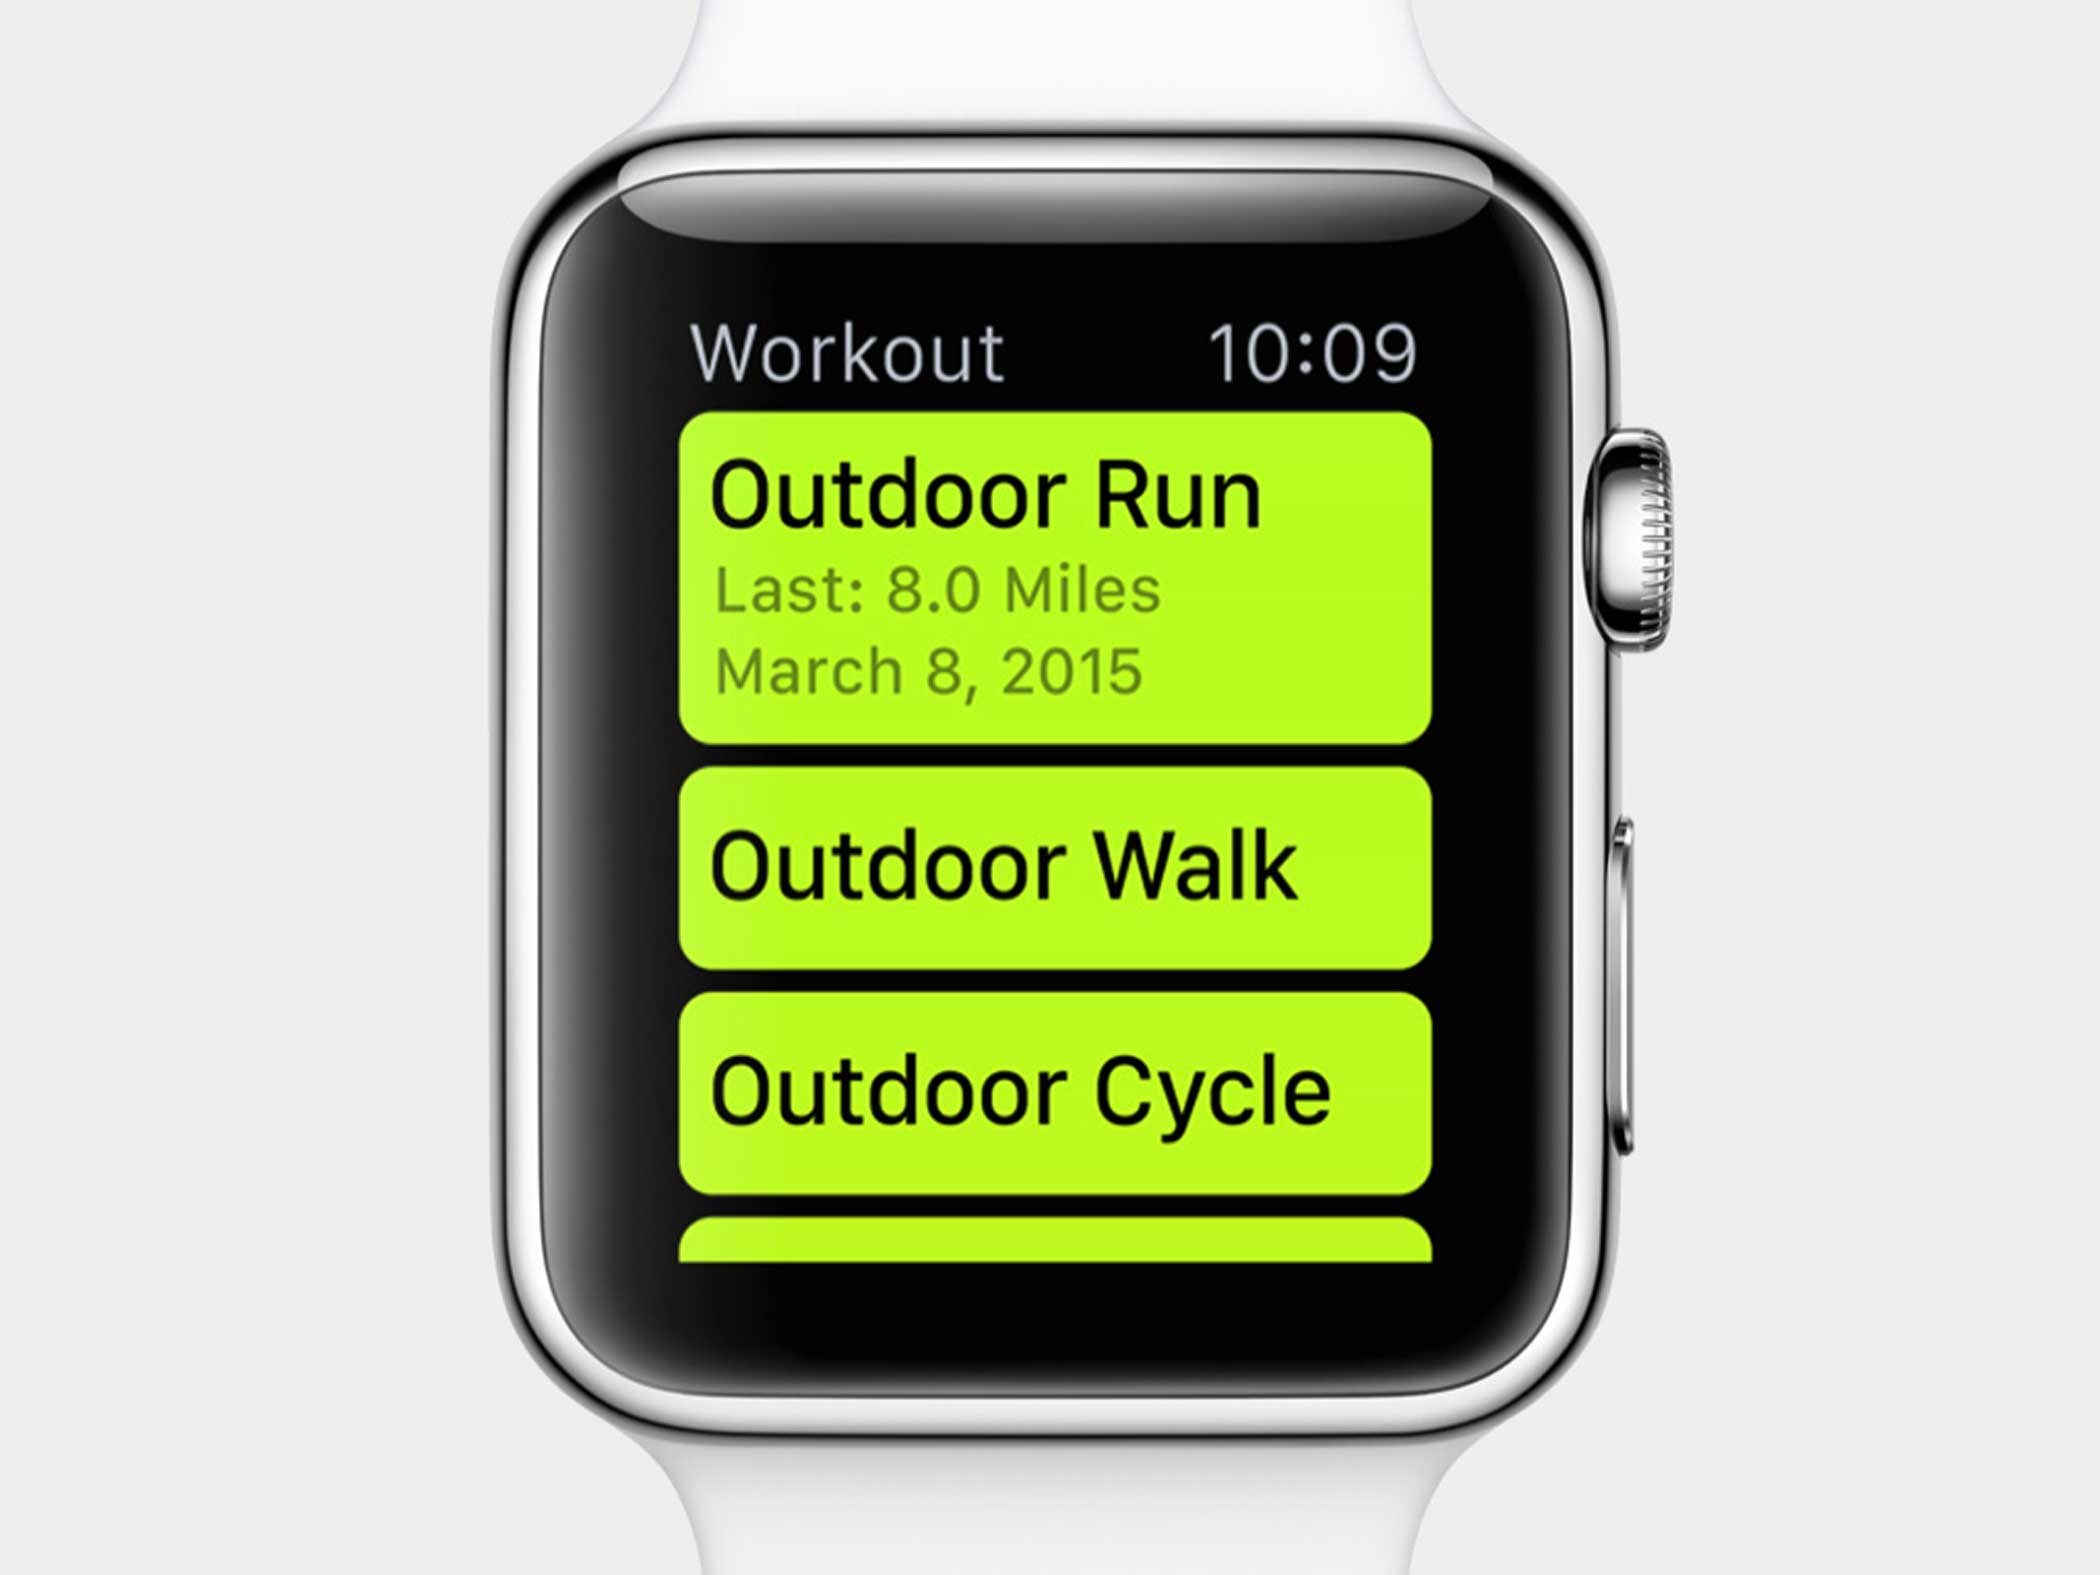 Track your fitness using the Workout app.